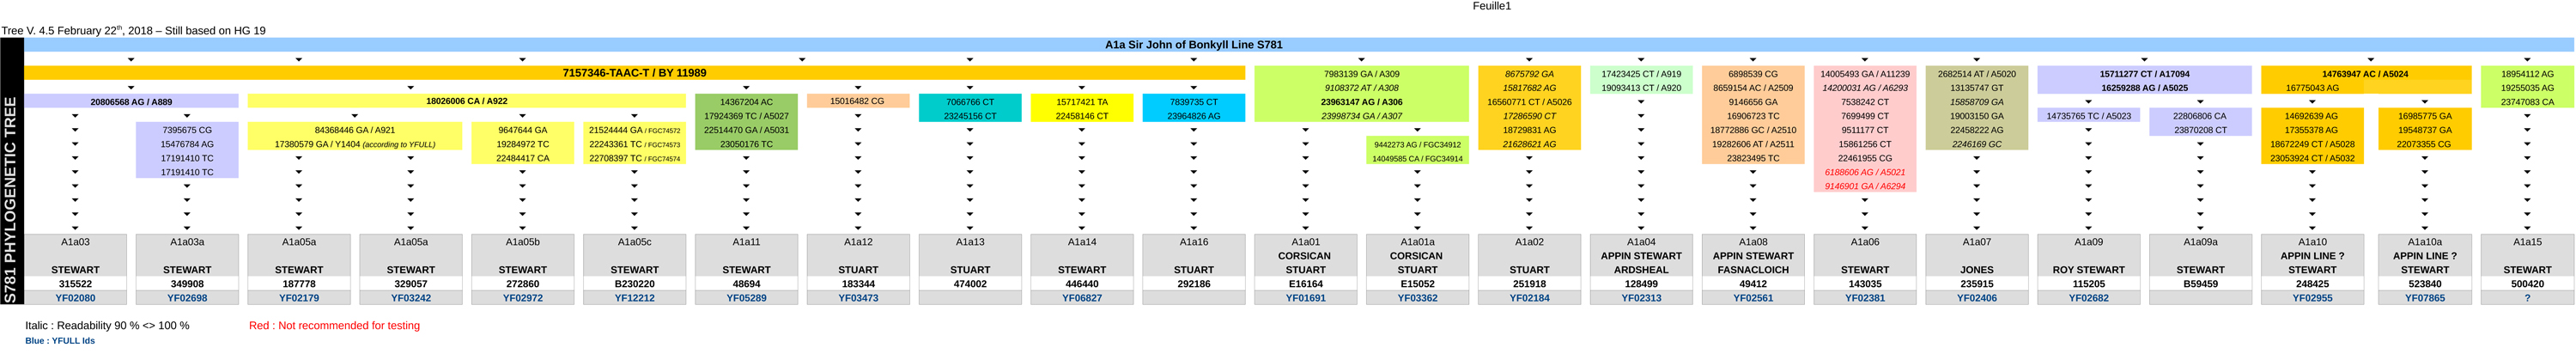 Branches of the R-S781 family